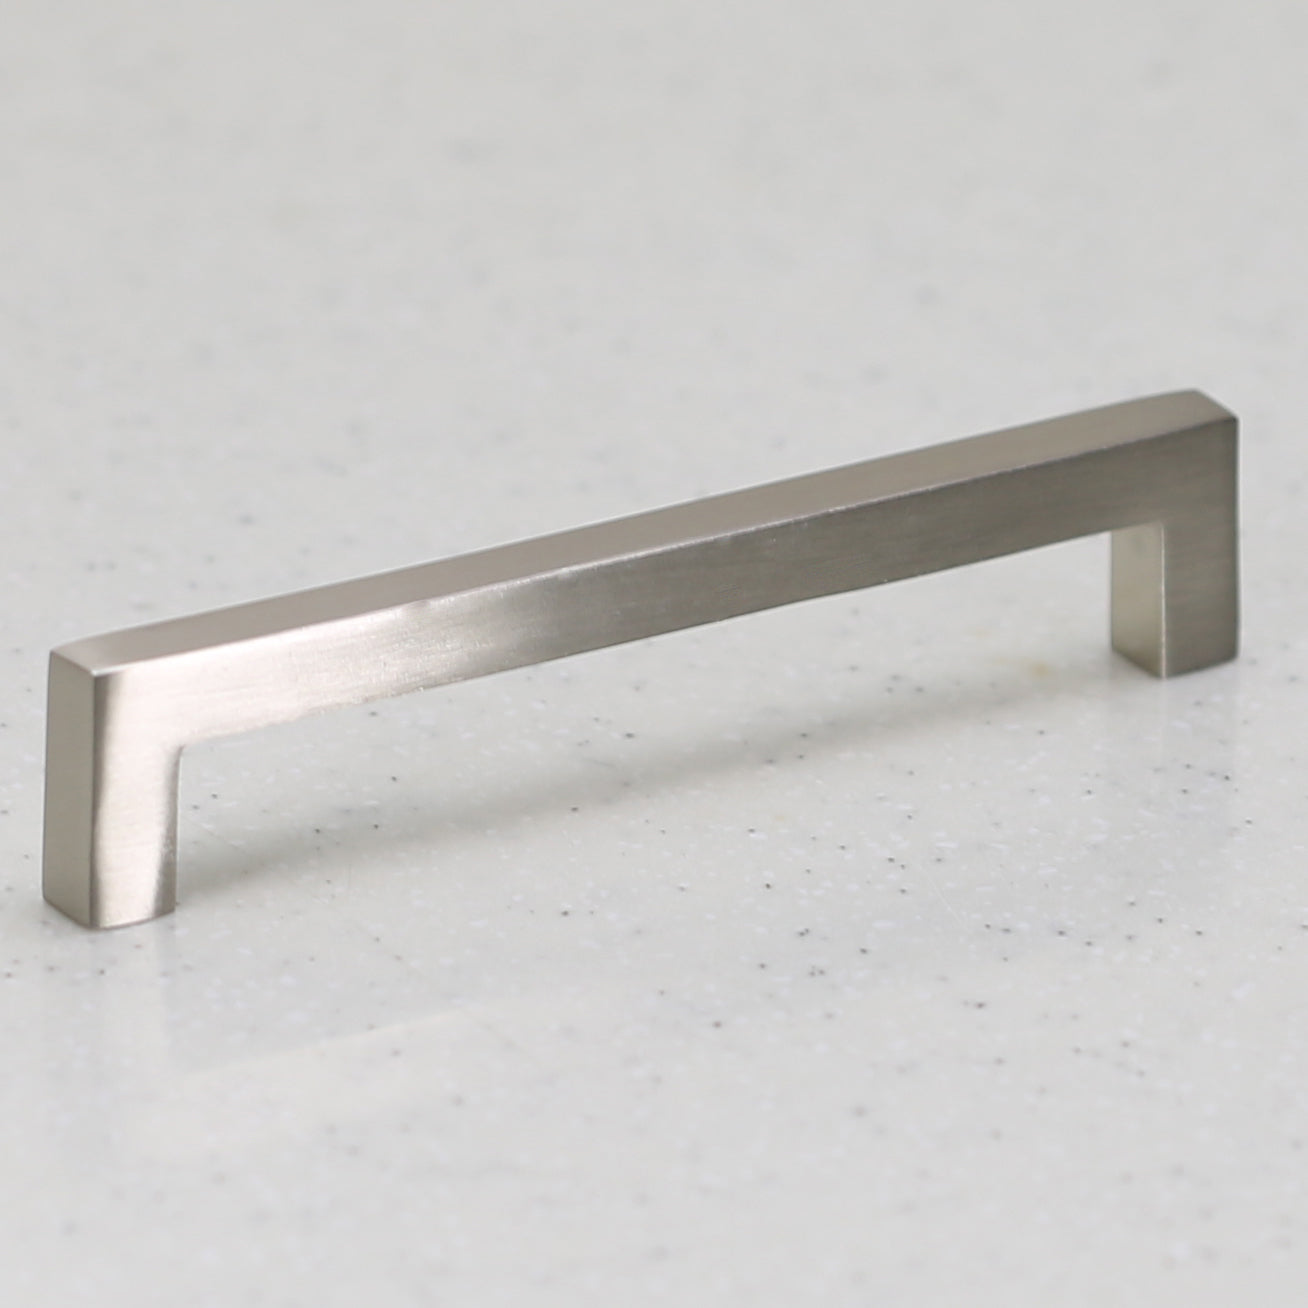 Ventoux Pull - Aluminium Satin Nickel - C/C 128mm